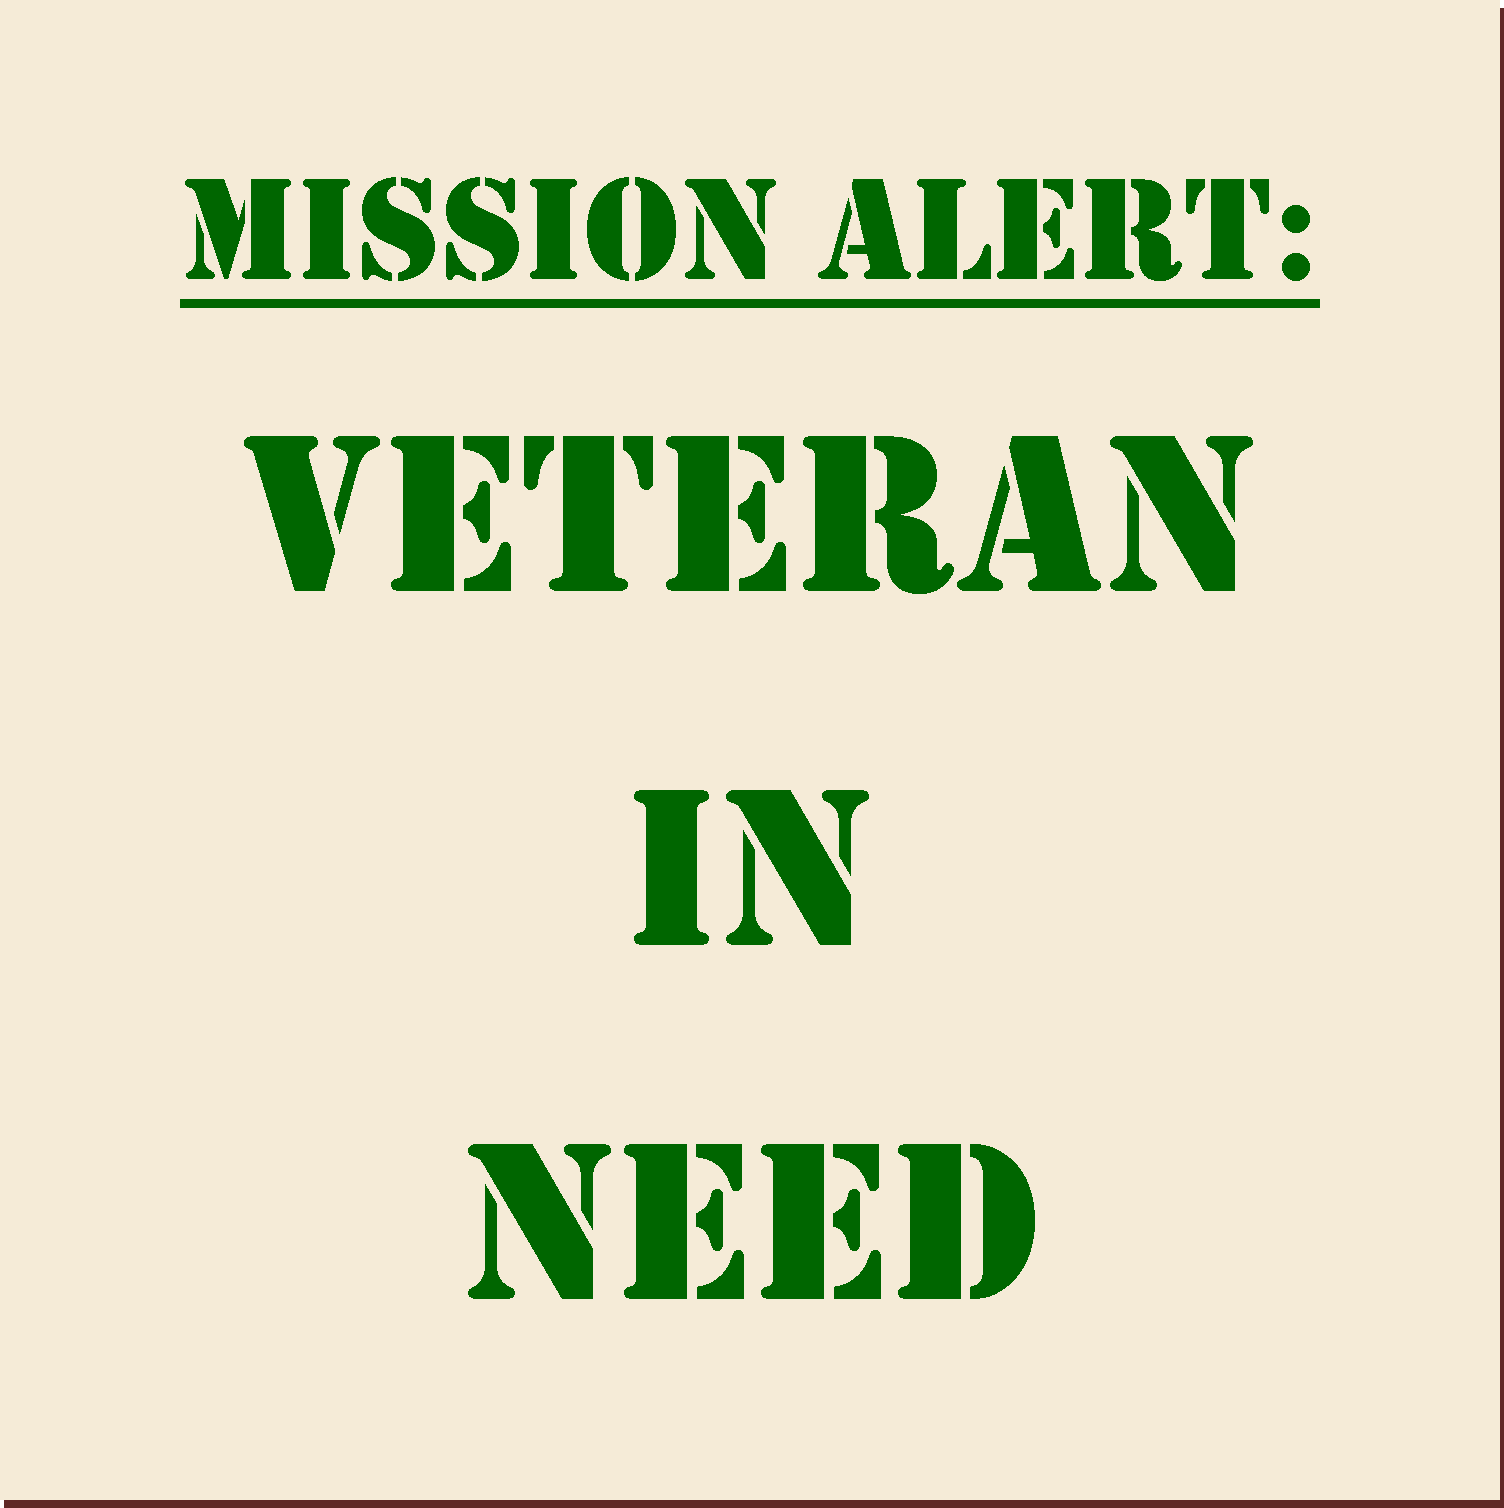 Good Morning – local Veterans need our assistance.